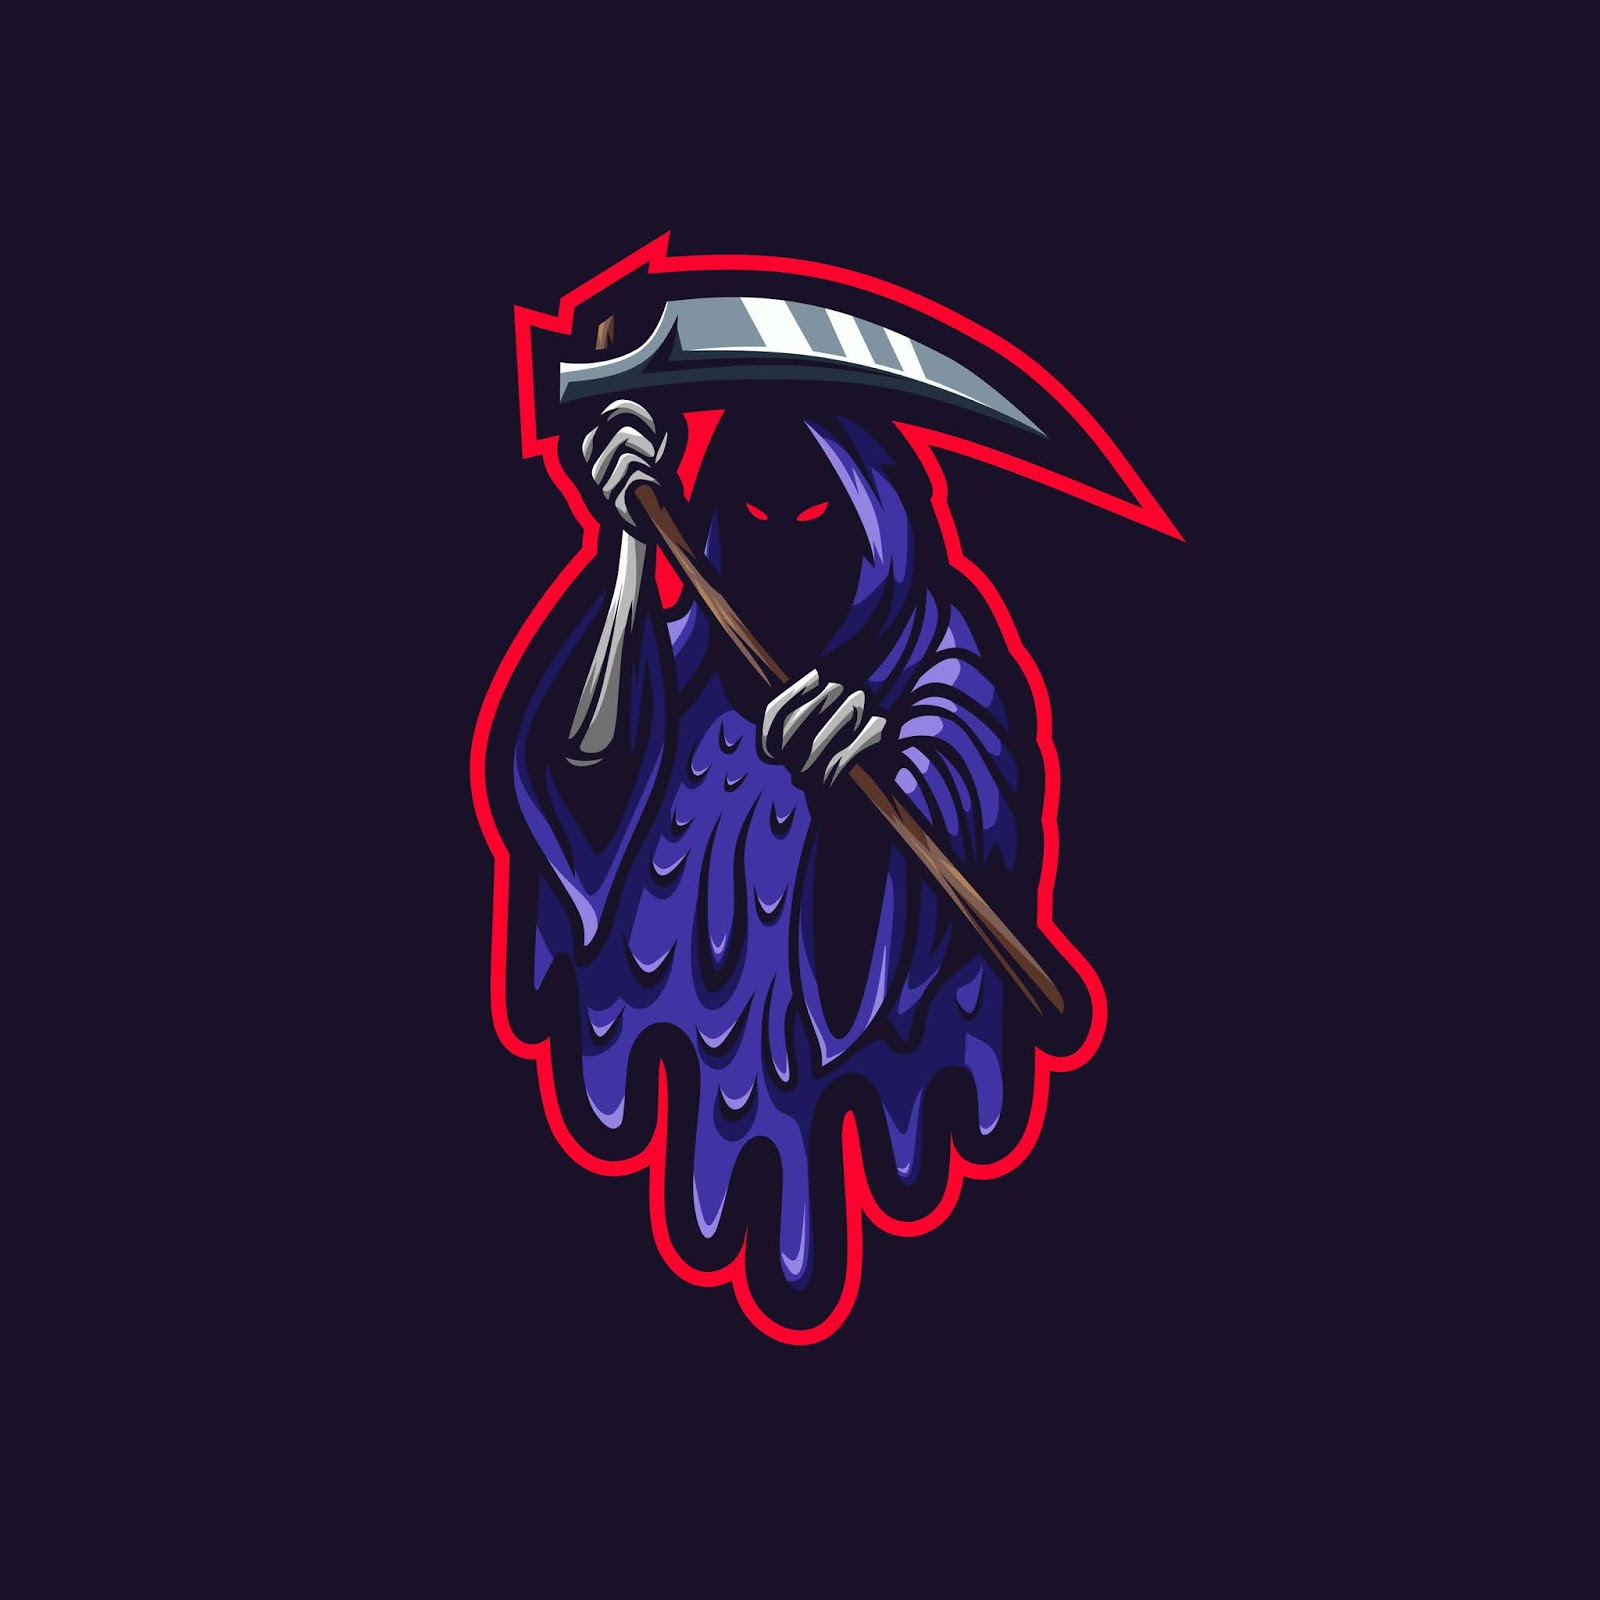 Reaper Esport Logo Grime Style Free Download Vector CDR, AI, EPS and PNG Formats